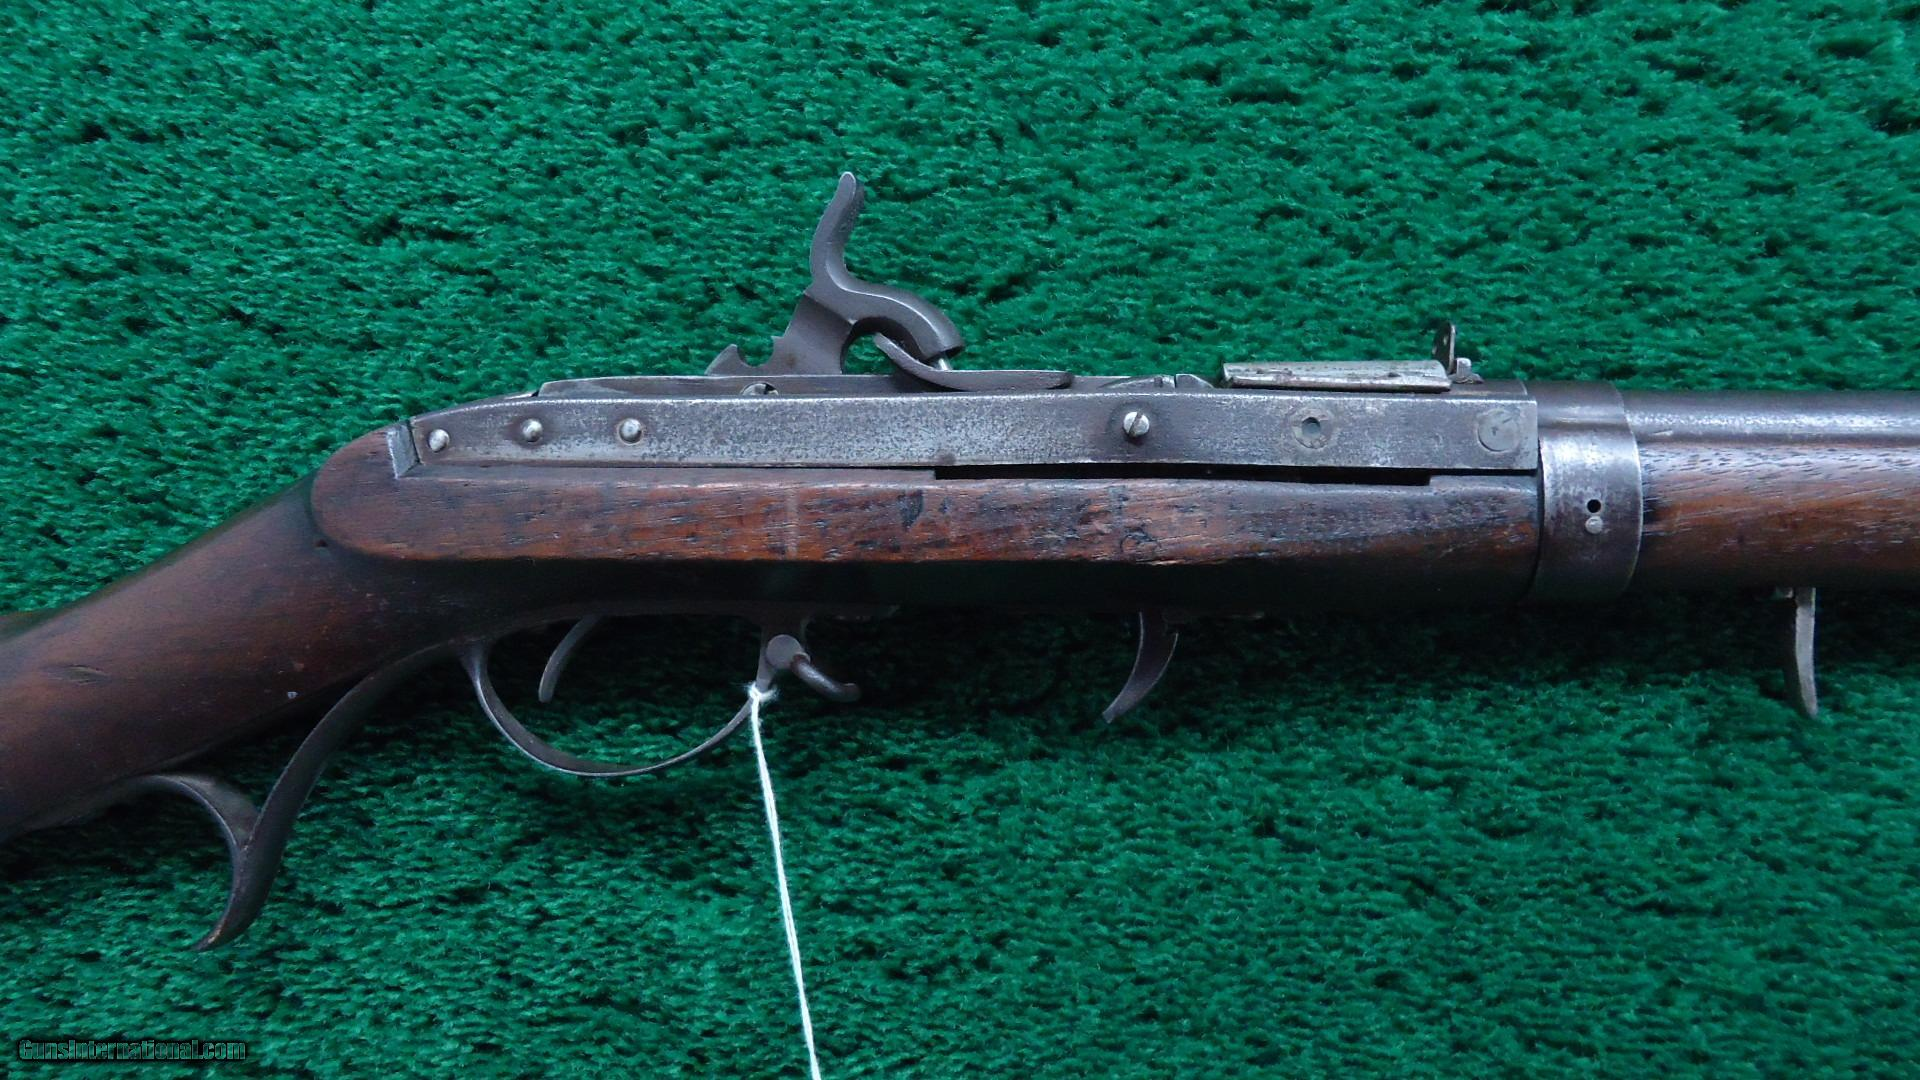 harpers ferry divorced singles personals As such the harper's ferry model 1805  the belgian centennial arms reproduction of the harpers ferry pistol is older than the pedersoli version, dating to the.